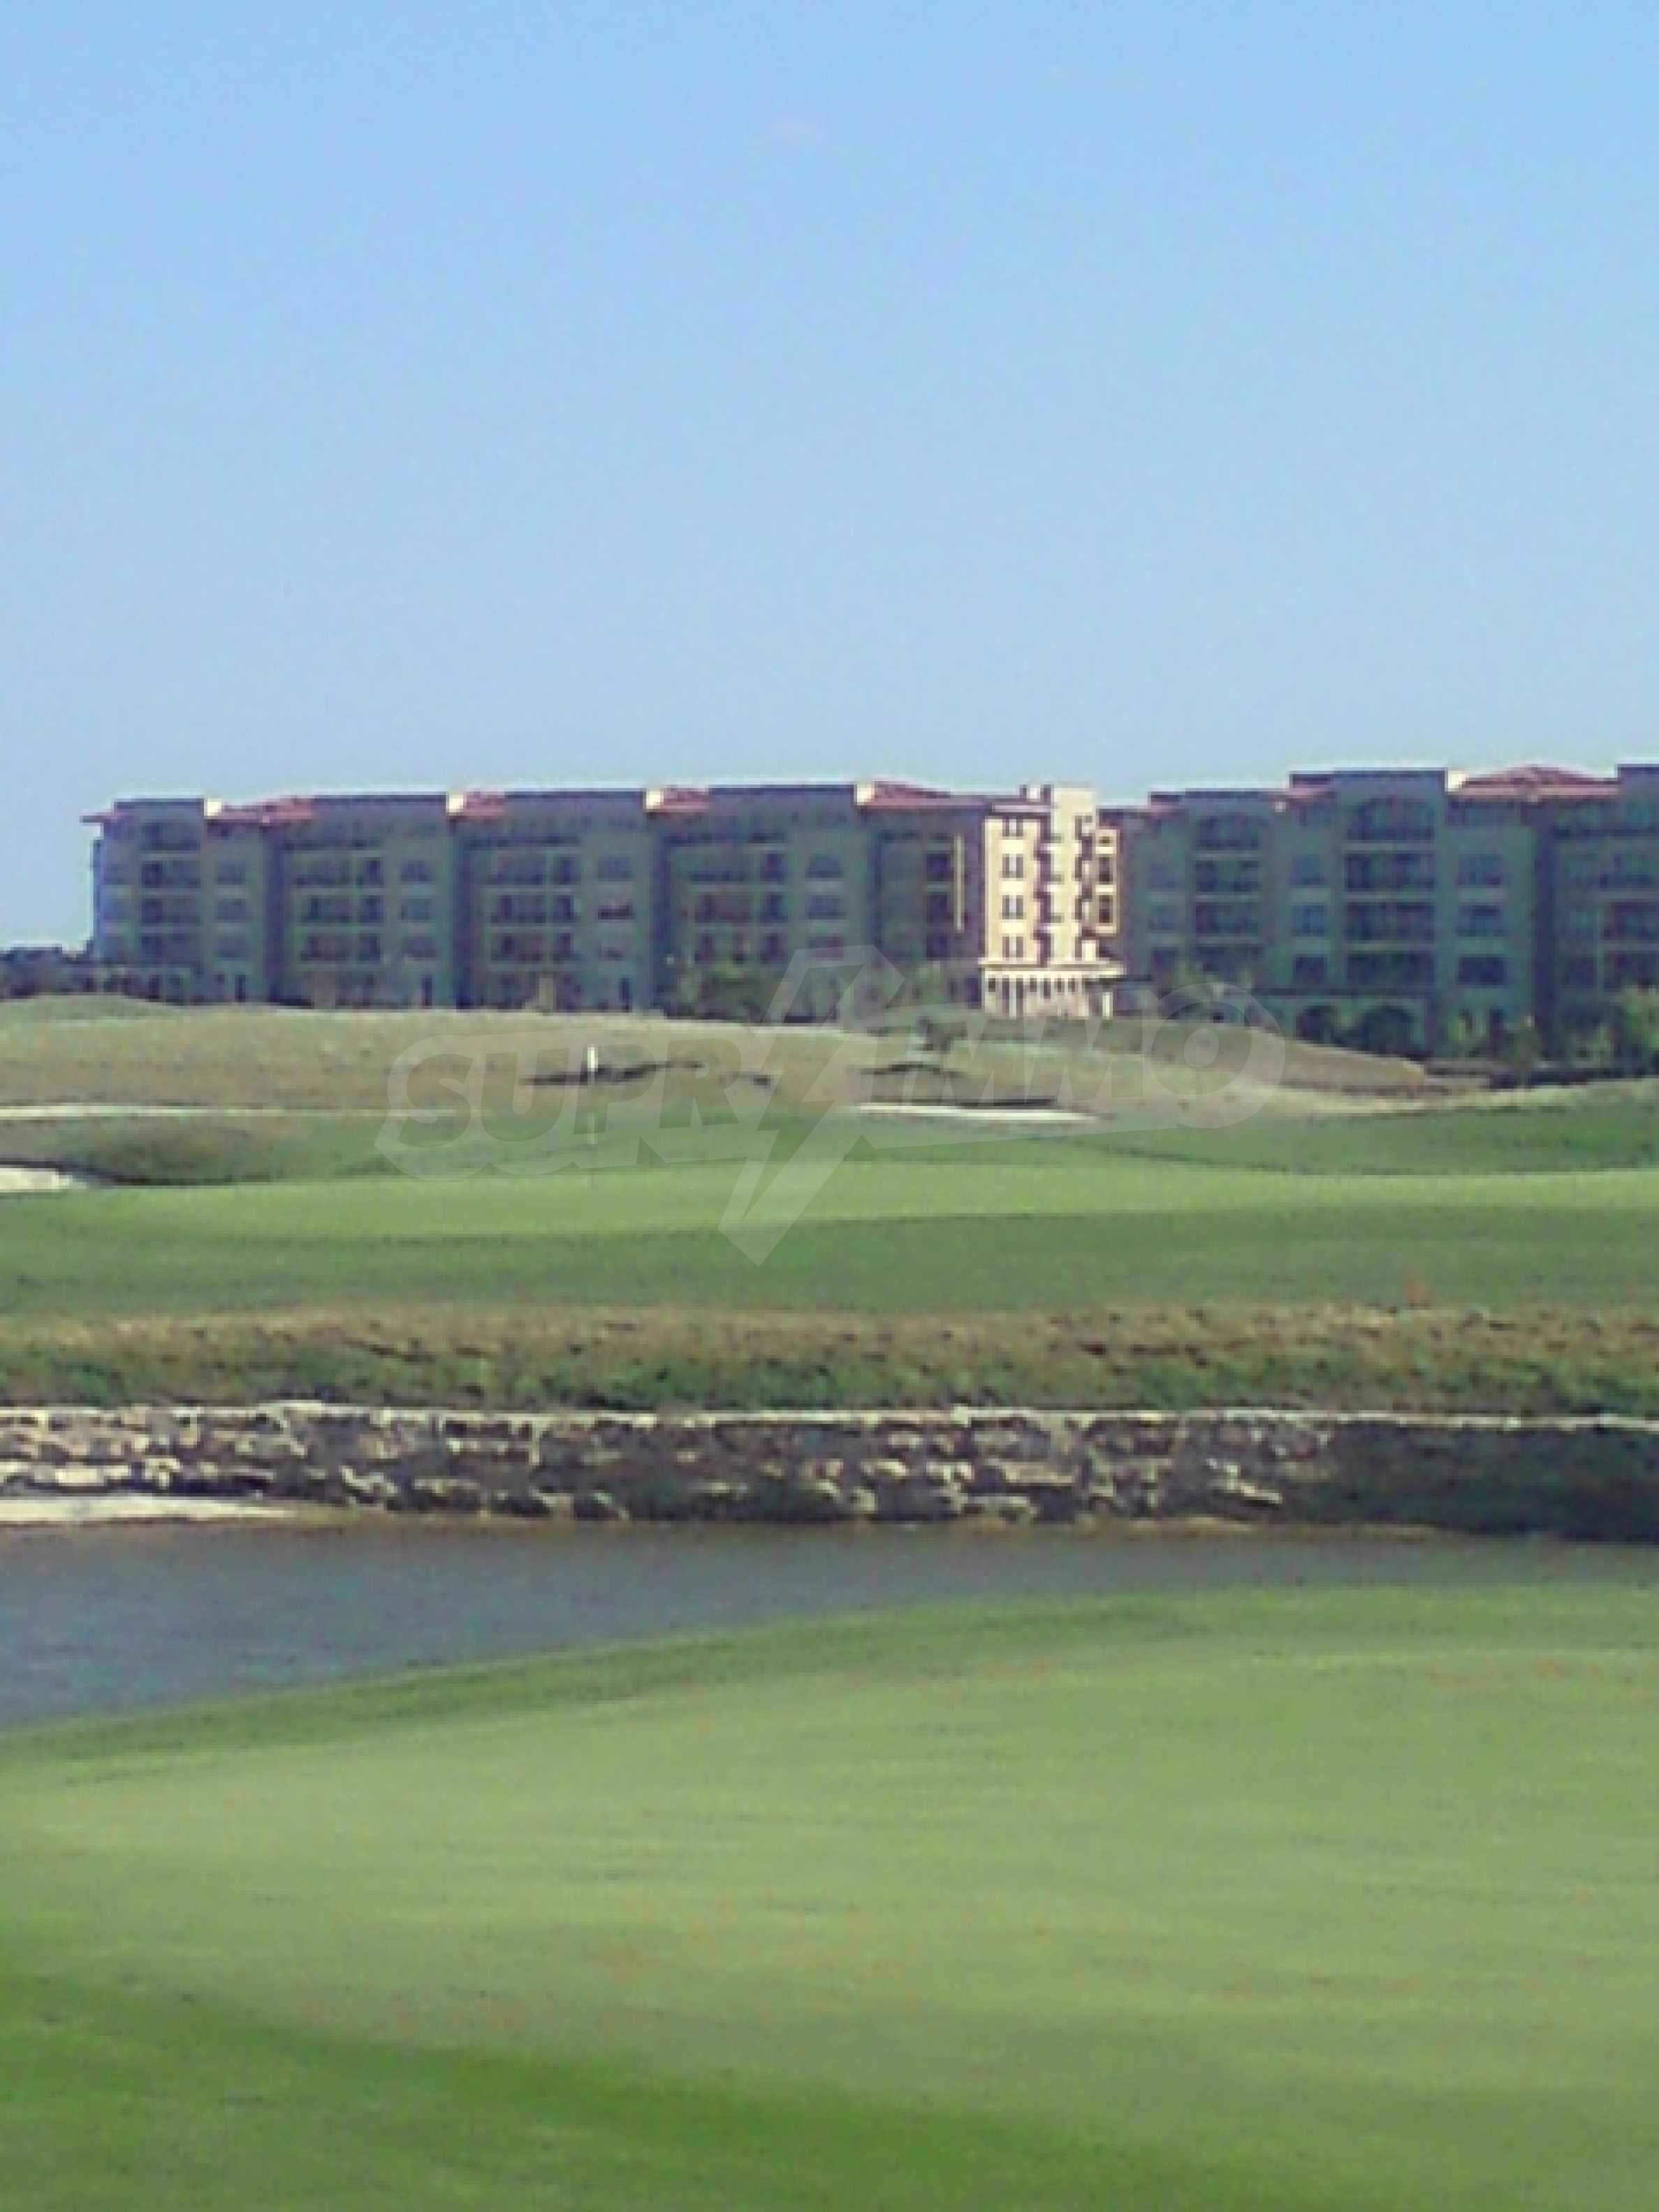 1-bed penthouse apartment in Lighhouse Golf Resort  3